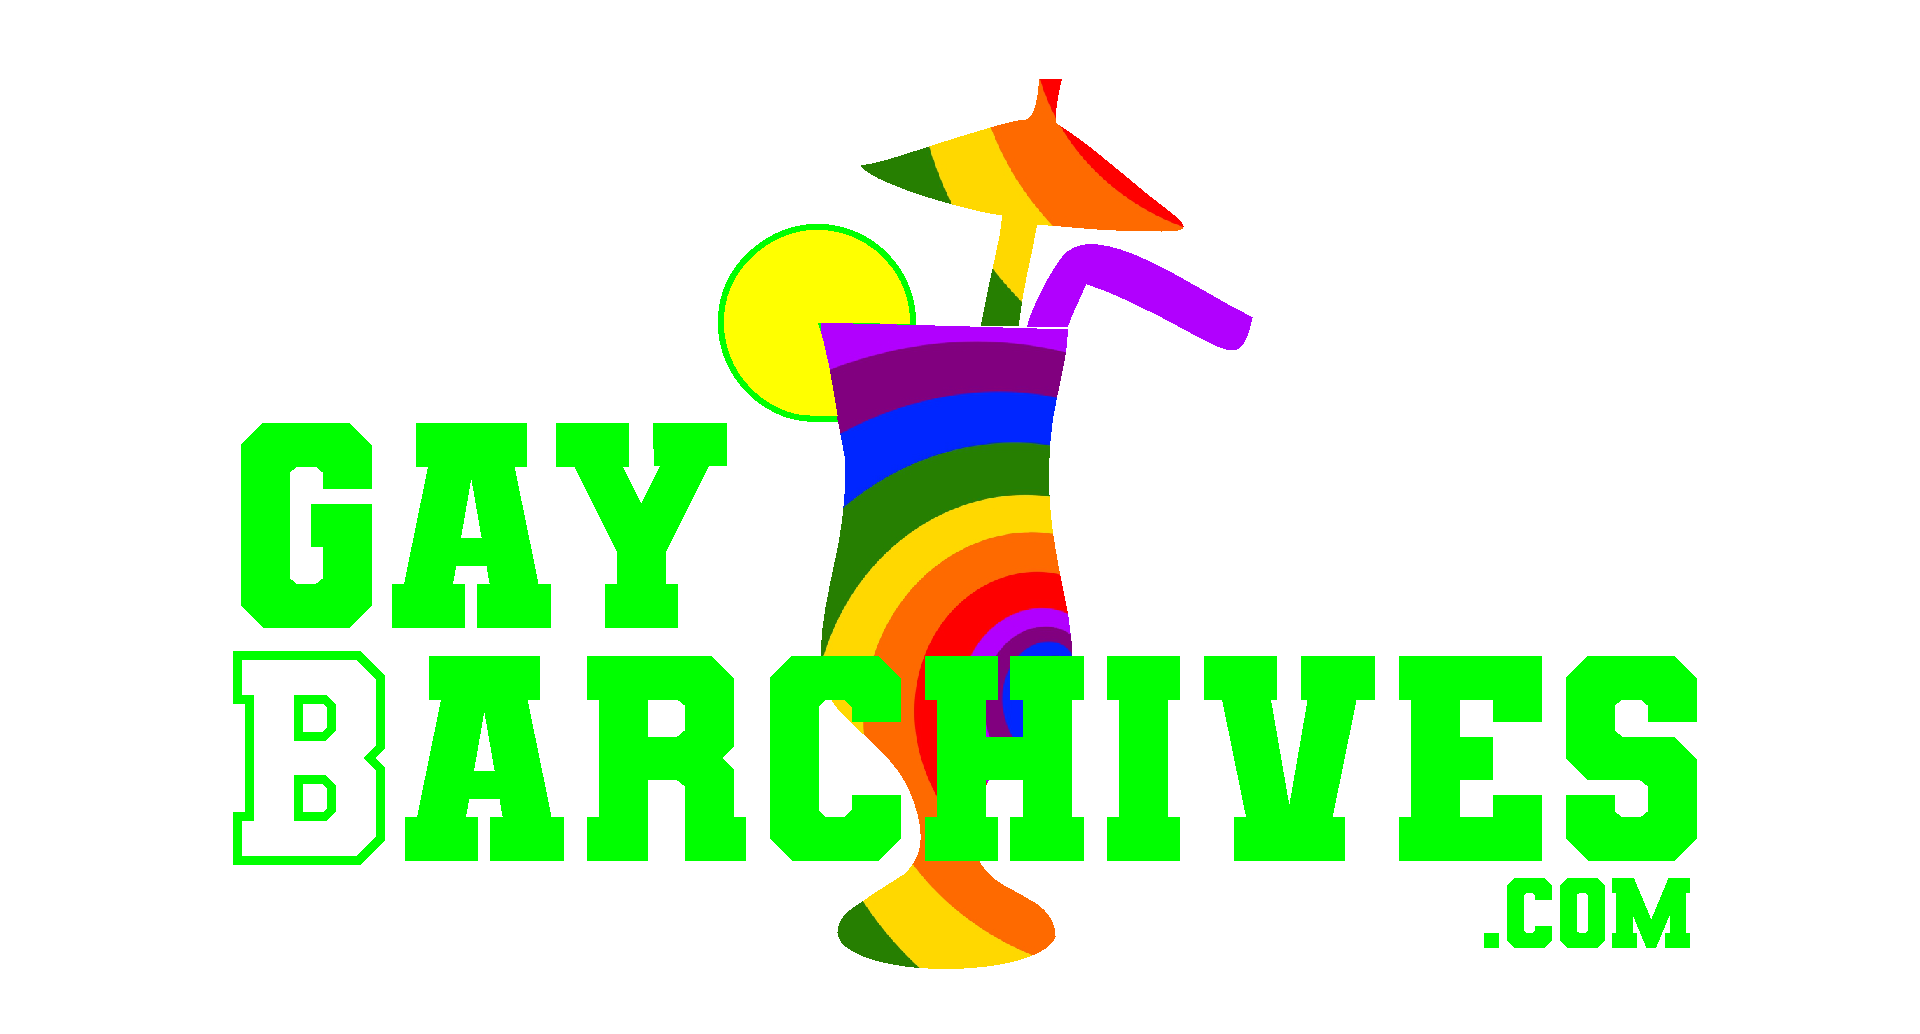 Building the World's Largest Collection of the logos and stories of gay bars from the past. This colossal undertaking is documented at GayBarchives.com